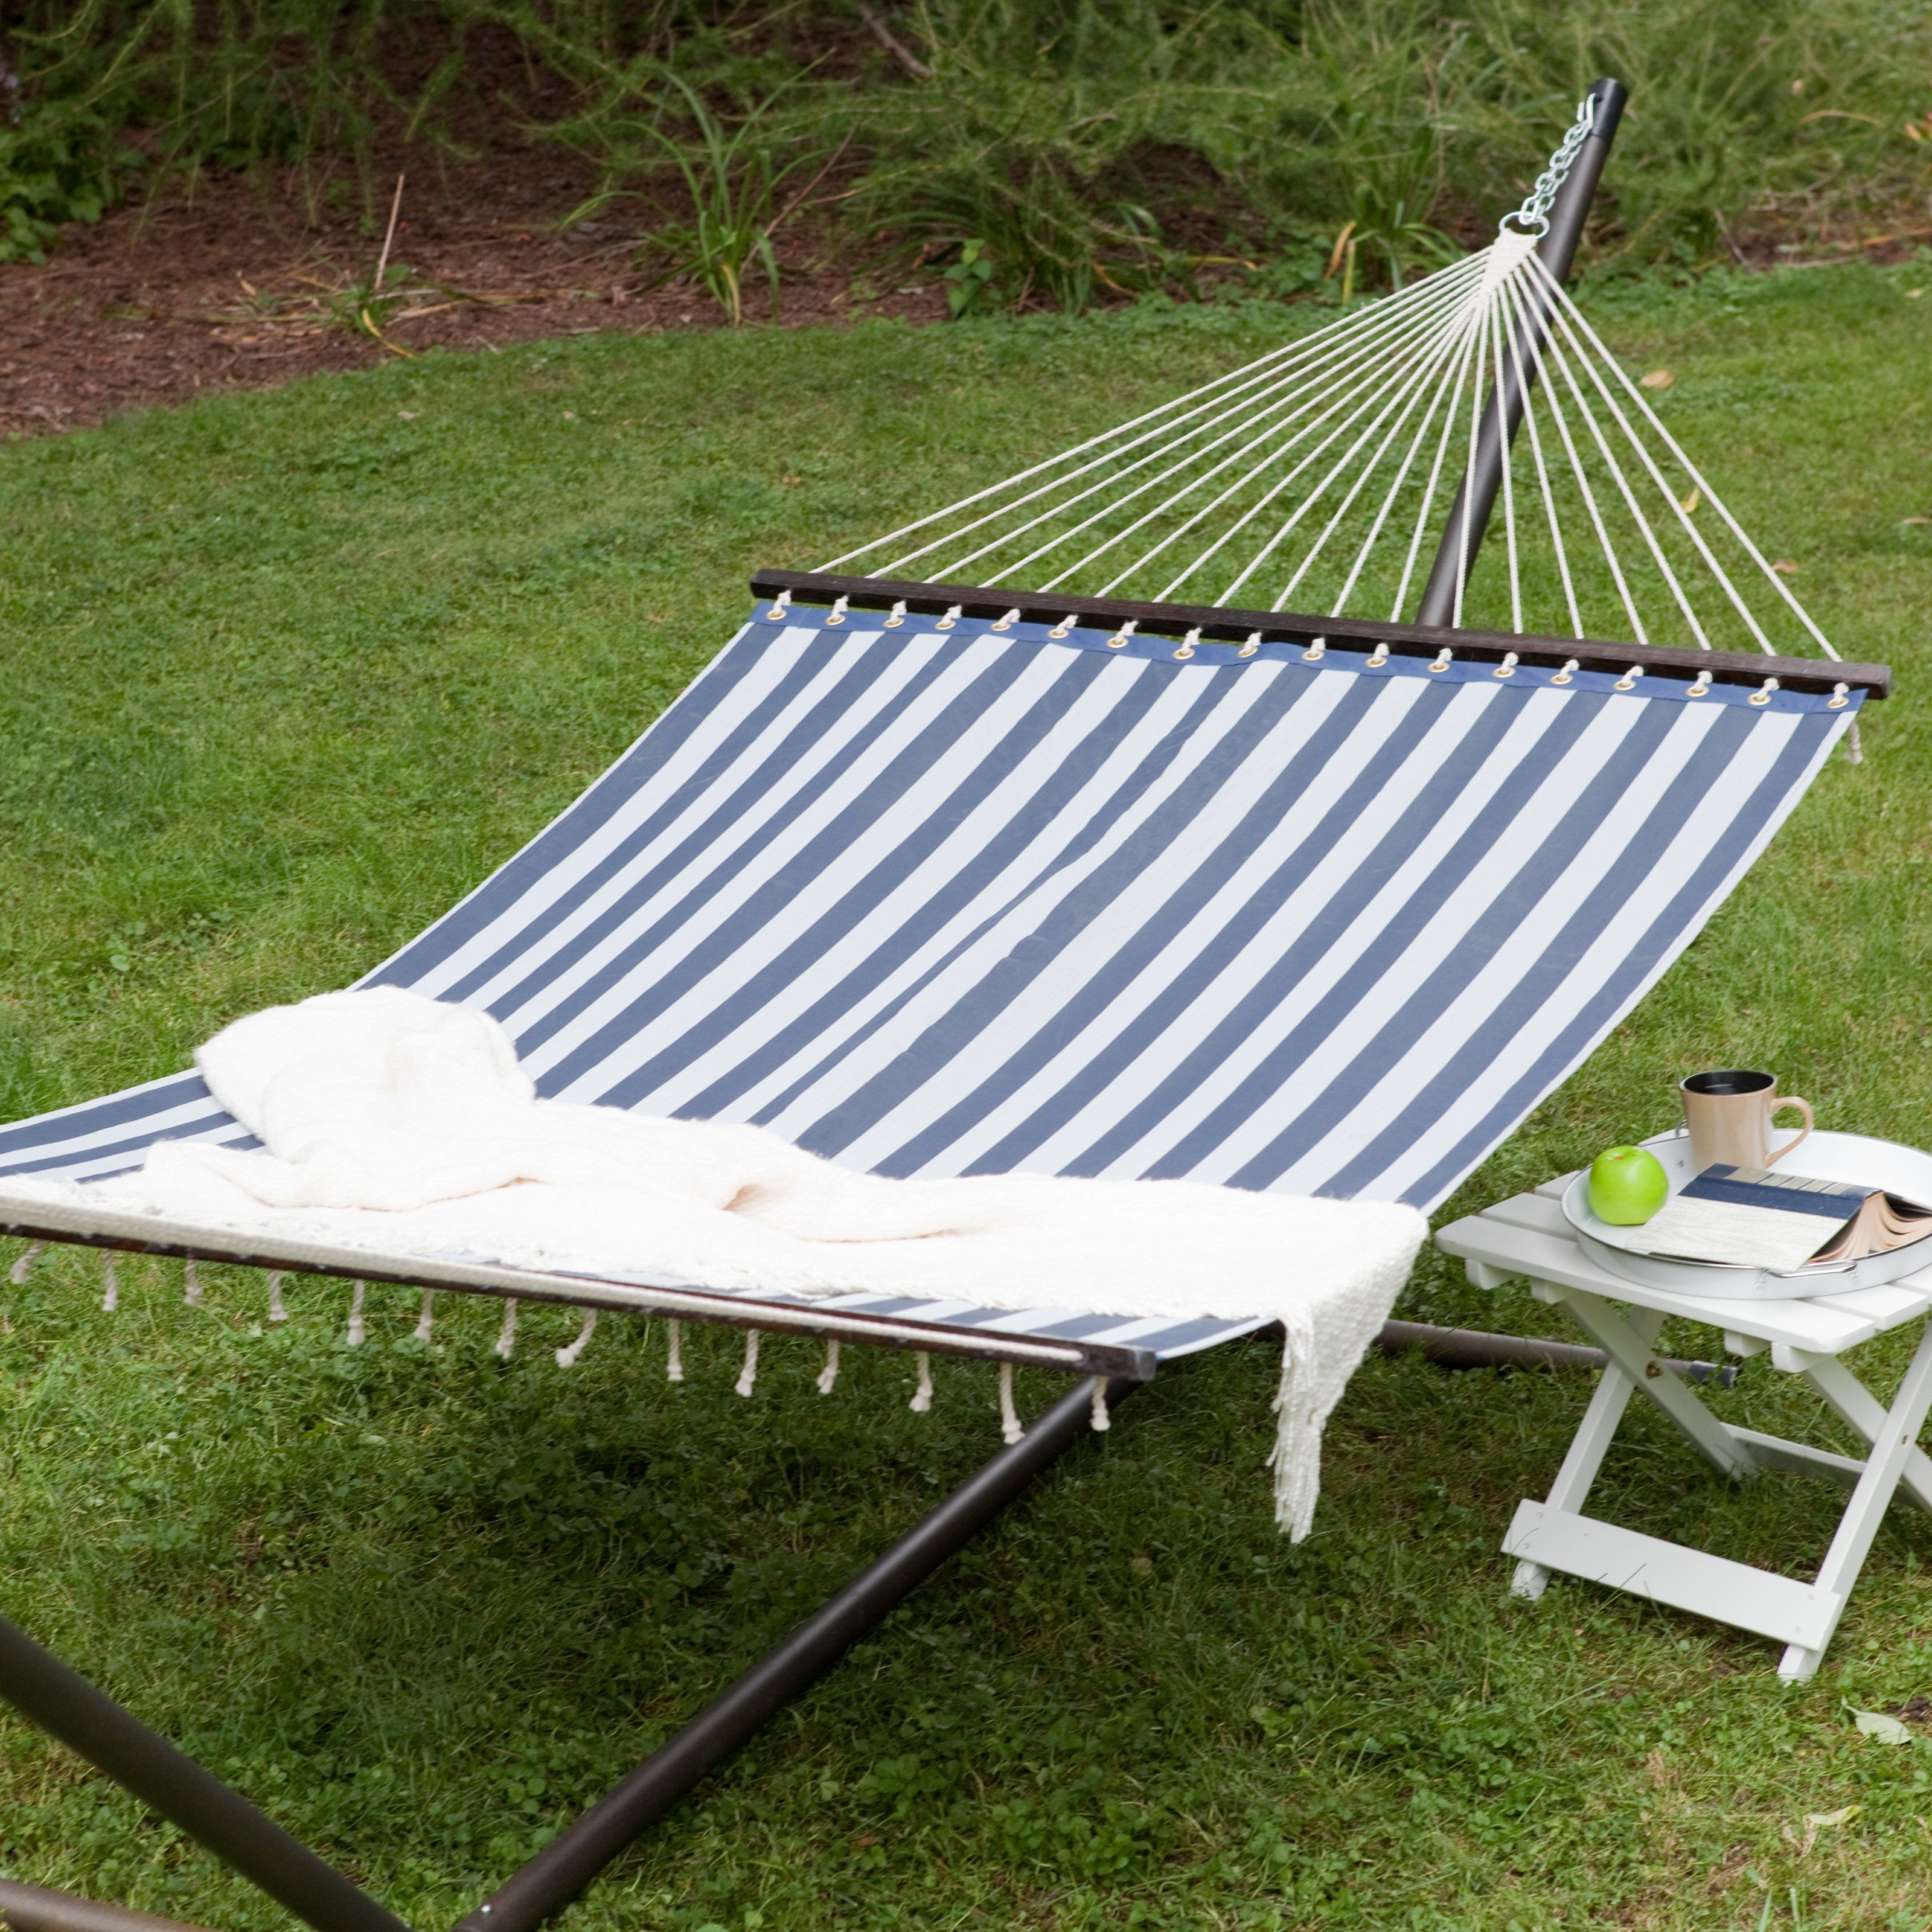 island bay 13 ft  quick dry poolside navy stripes hammock with steel stand   alz768 island bay 13 ft  quick dry poolside navy stripes hammock with      rh   pinterest